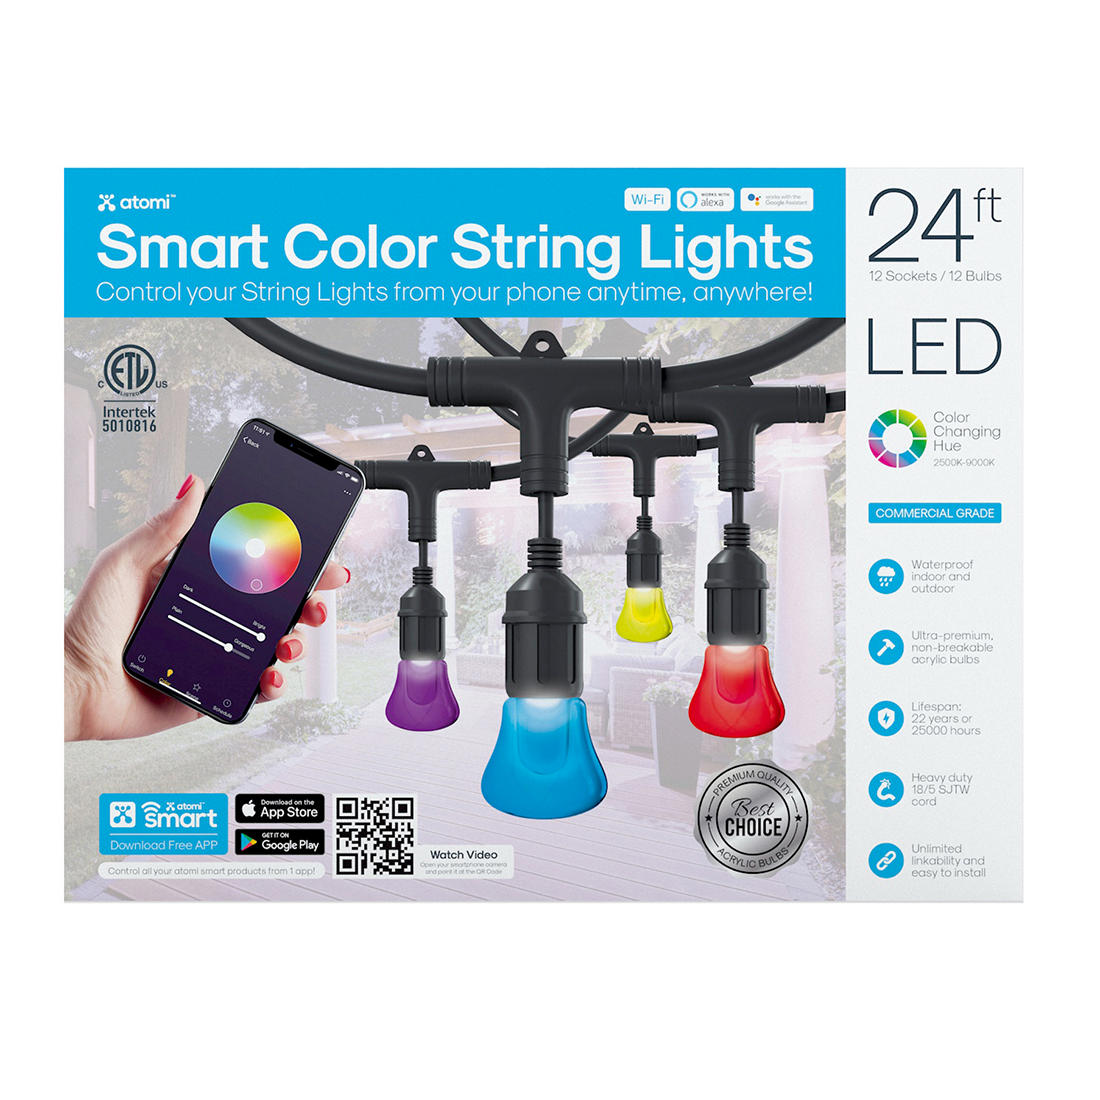 official photos 6f1d2 72700 Atomi 24' Color Smart LED String Lights